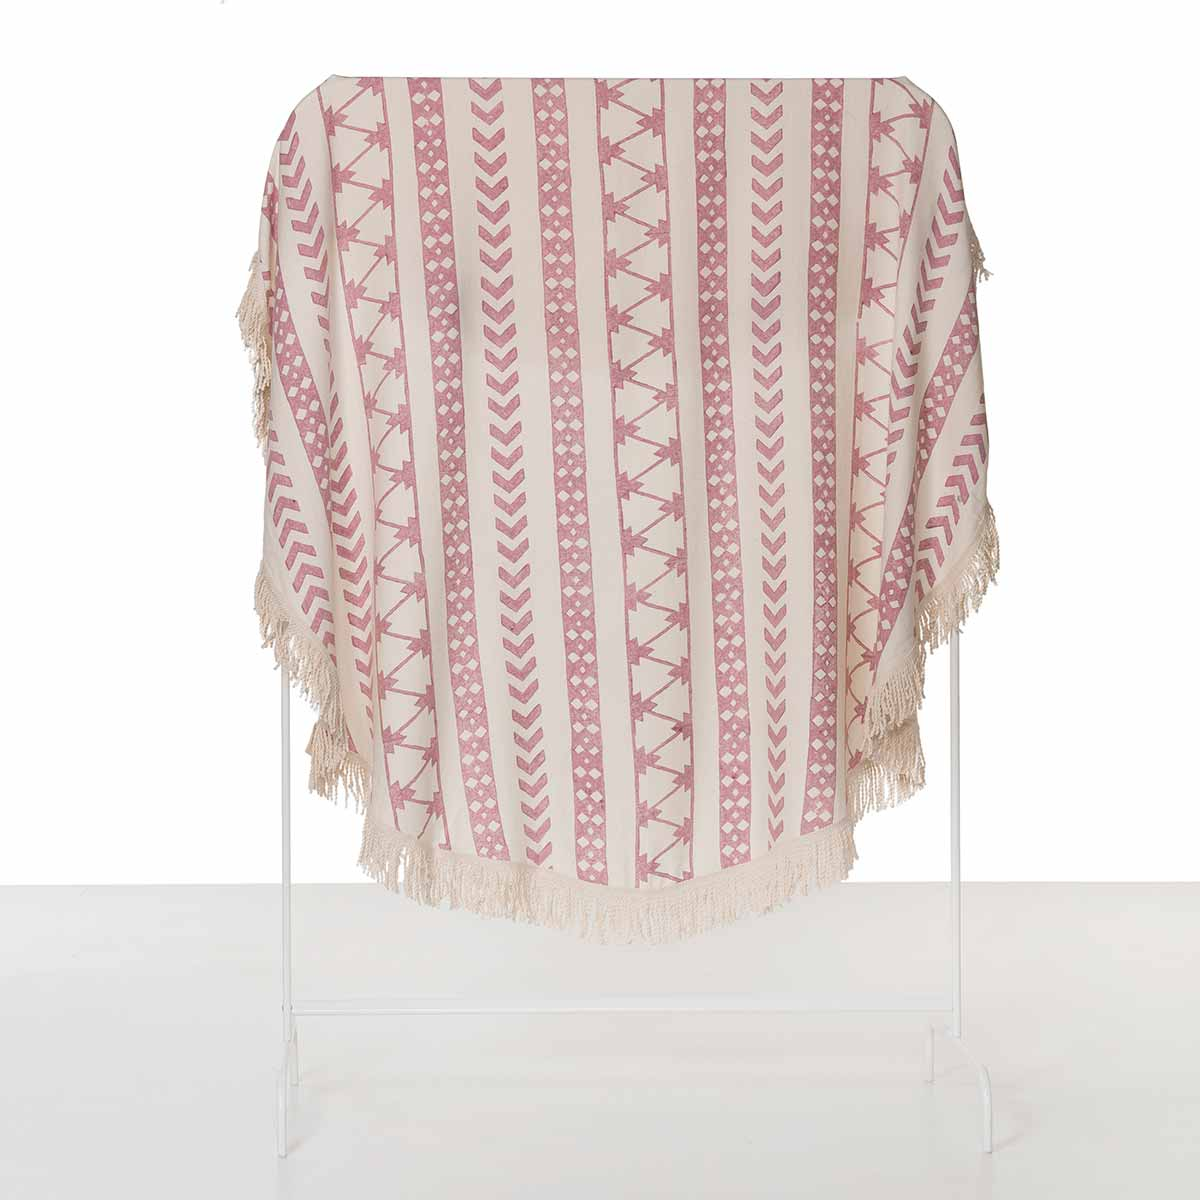 Round Towel / Cloth - Natural / Hand Printed 06 - Dusty Rose